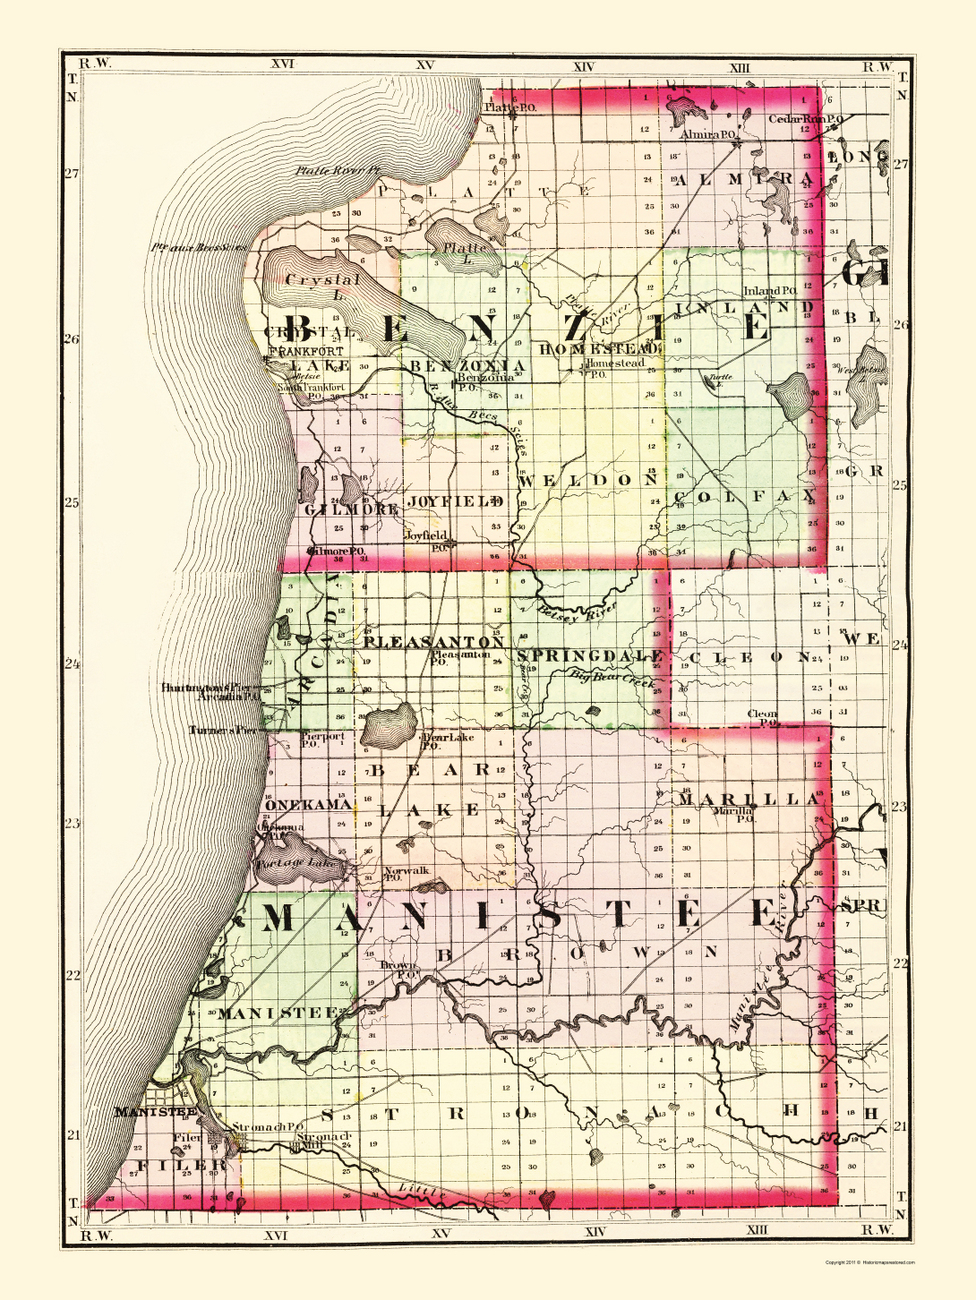 Old County Maps BENZIE MANISTEE COUNTIES MICHIGAN MI BY TACKABURY 1873